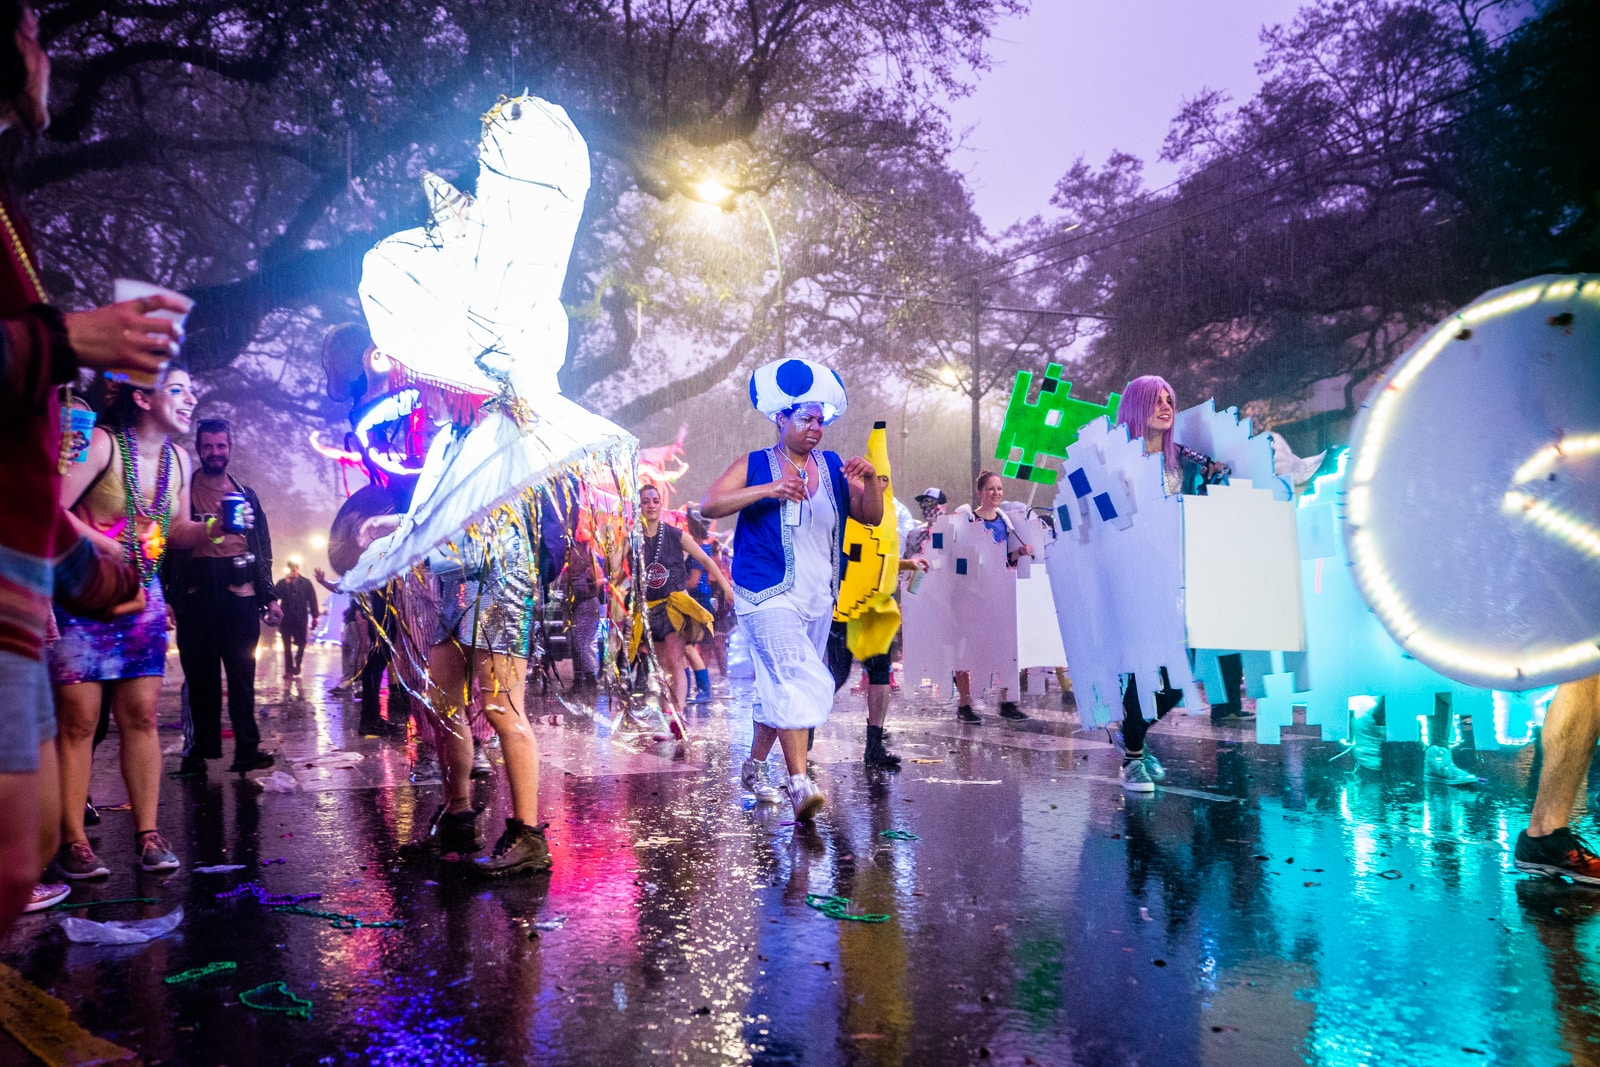 Mardi Gras parade in New Orleans during a thunderstorm